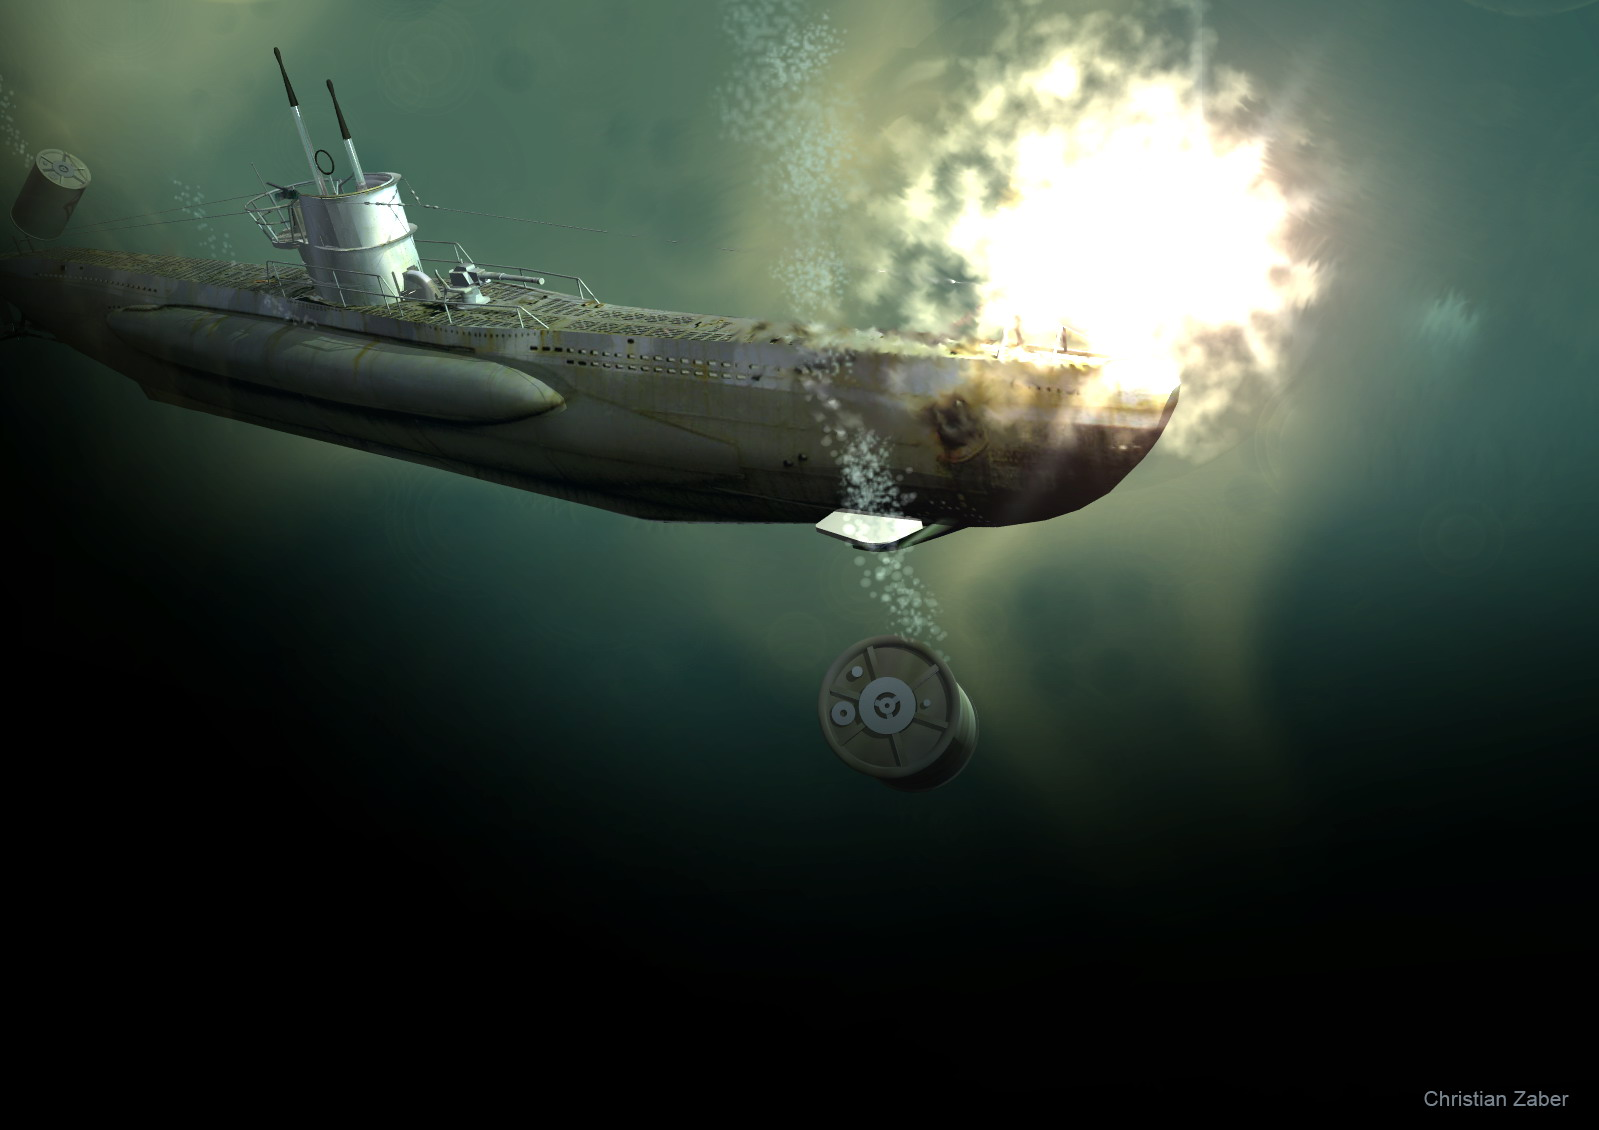 Alpha Coders Wallpaper Abyss Explore the Collection Warships Submarine ...: https://wall.alphacoders.com/big.php?i=393365